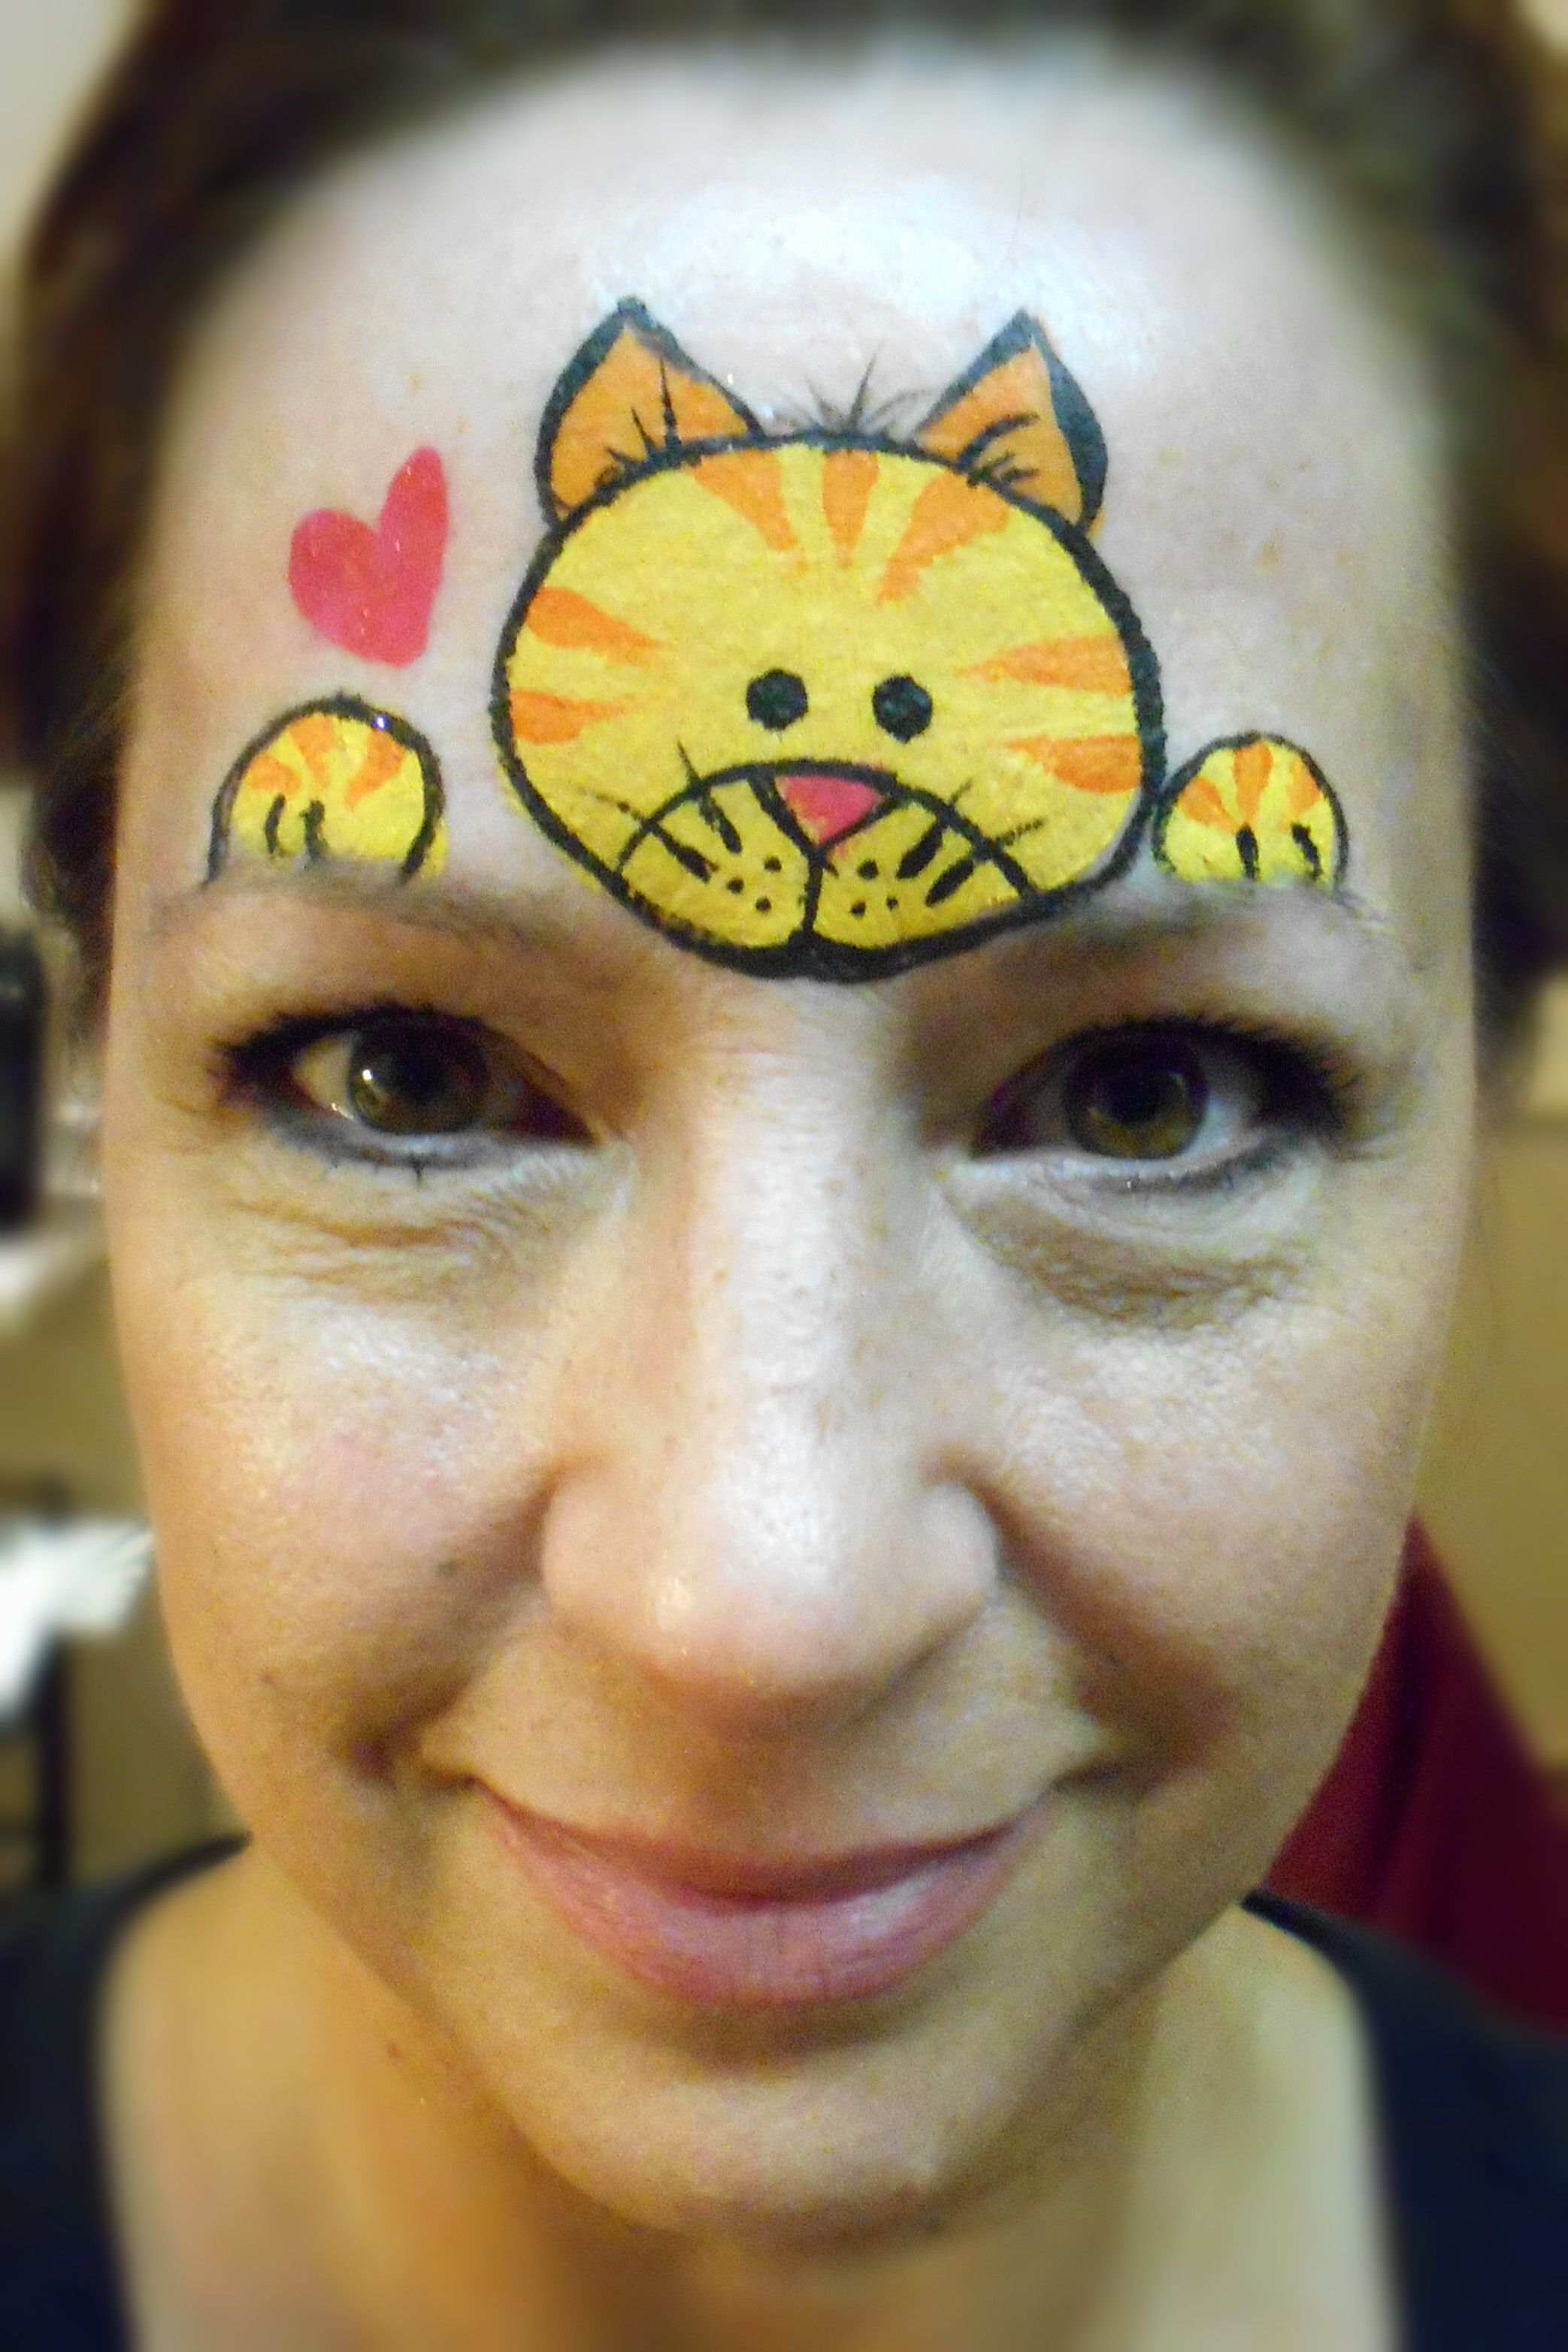 Face Paint Supplies Adelaide Yellow Orange Kitty Smiley Faces By Jo Face Painting By Others